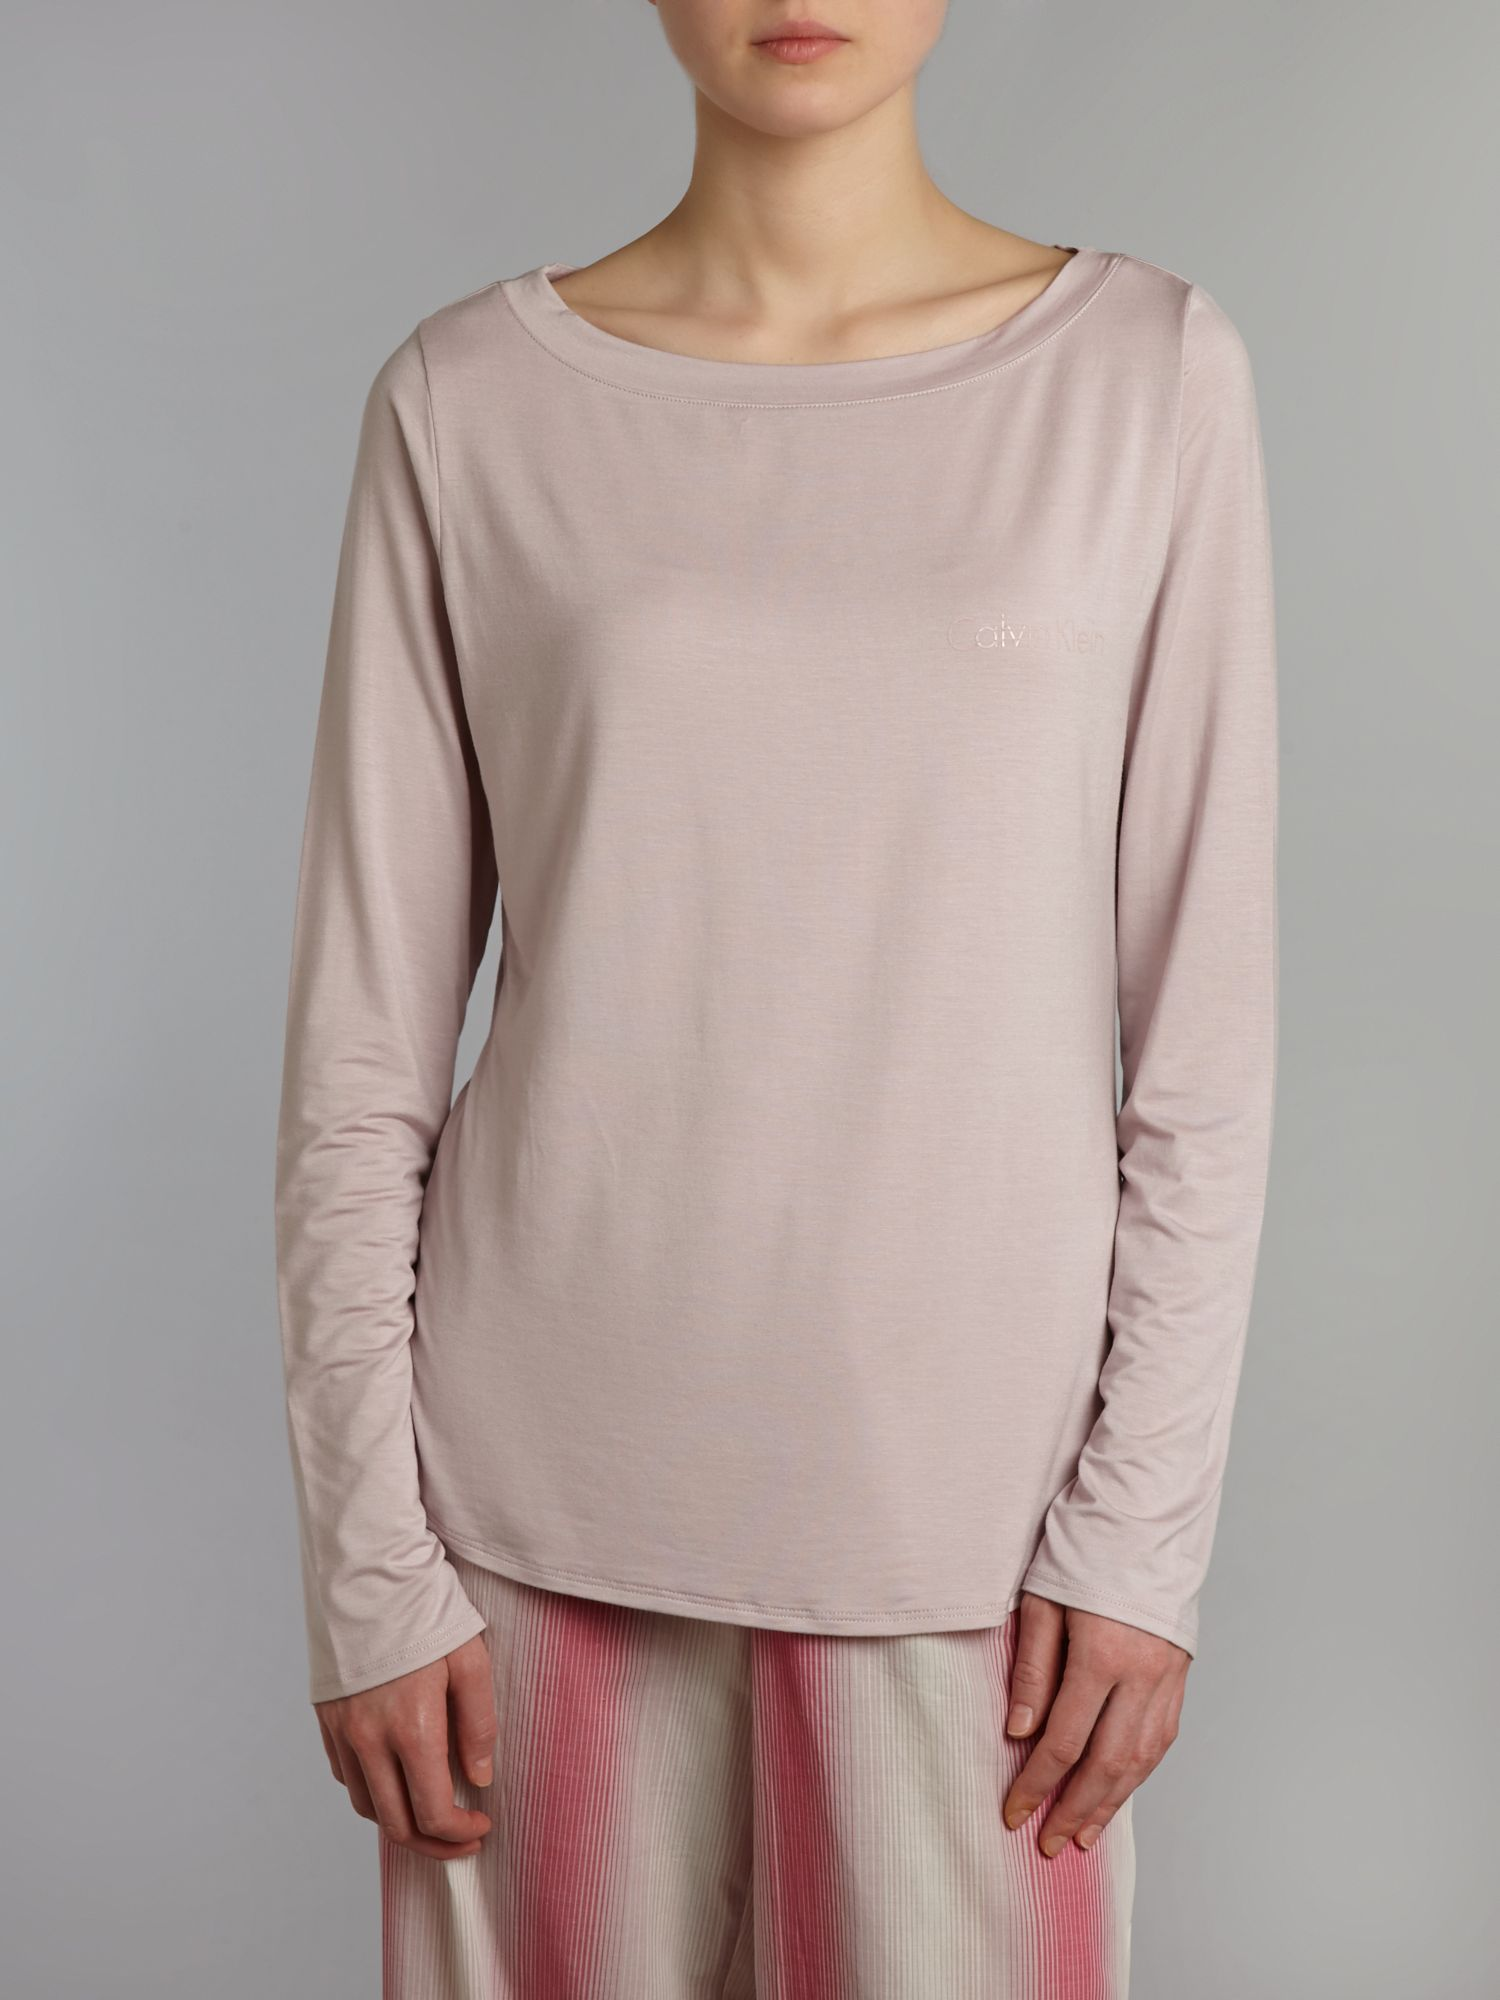 Modal coordinating top long sleeve pyjama top